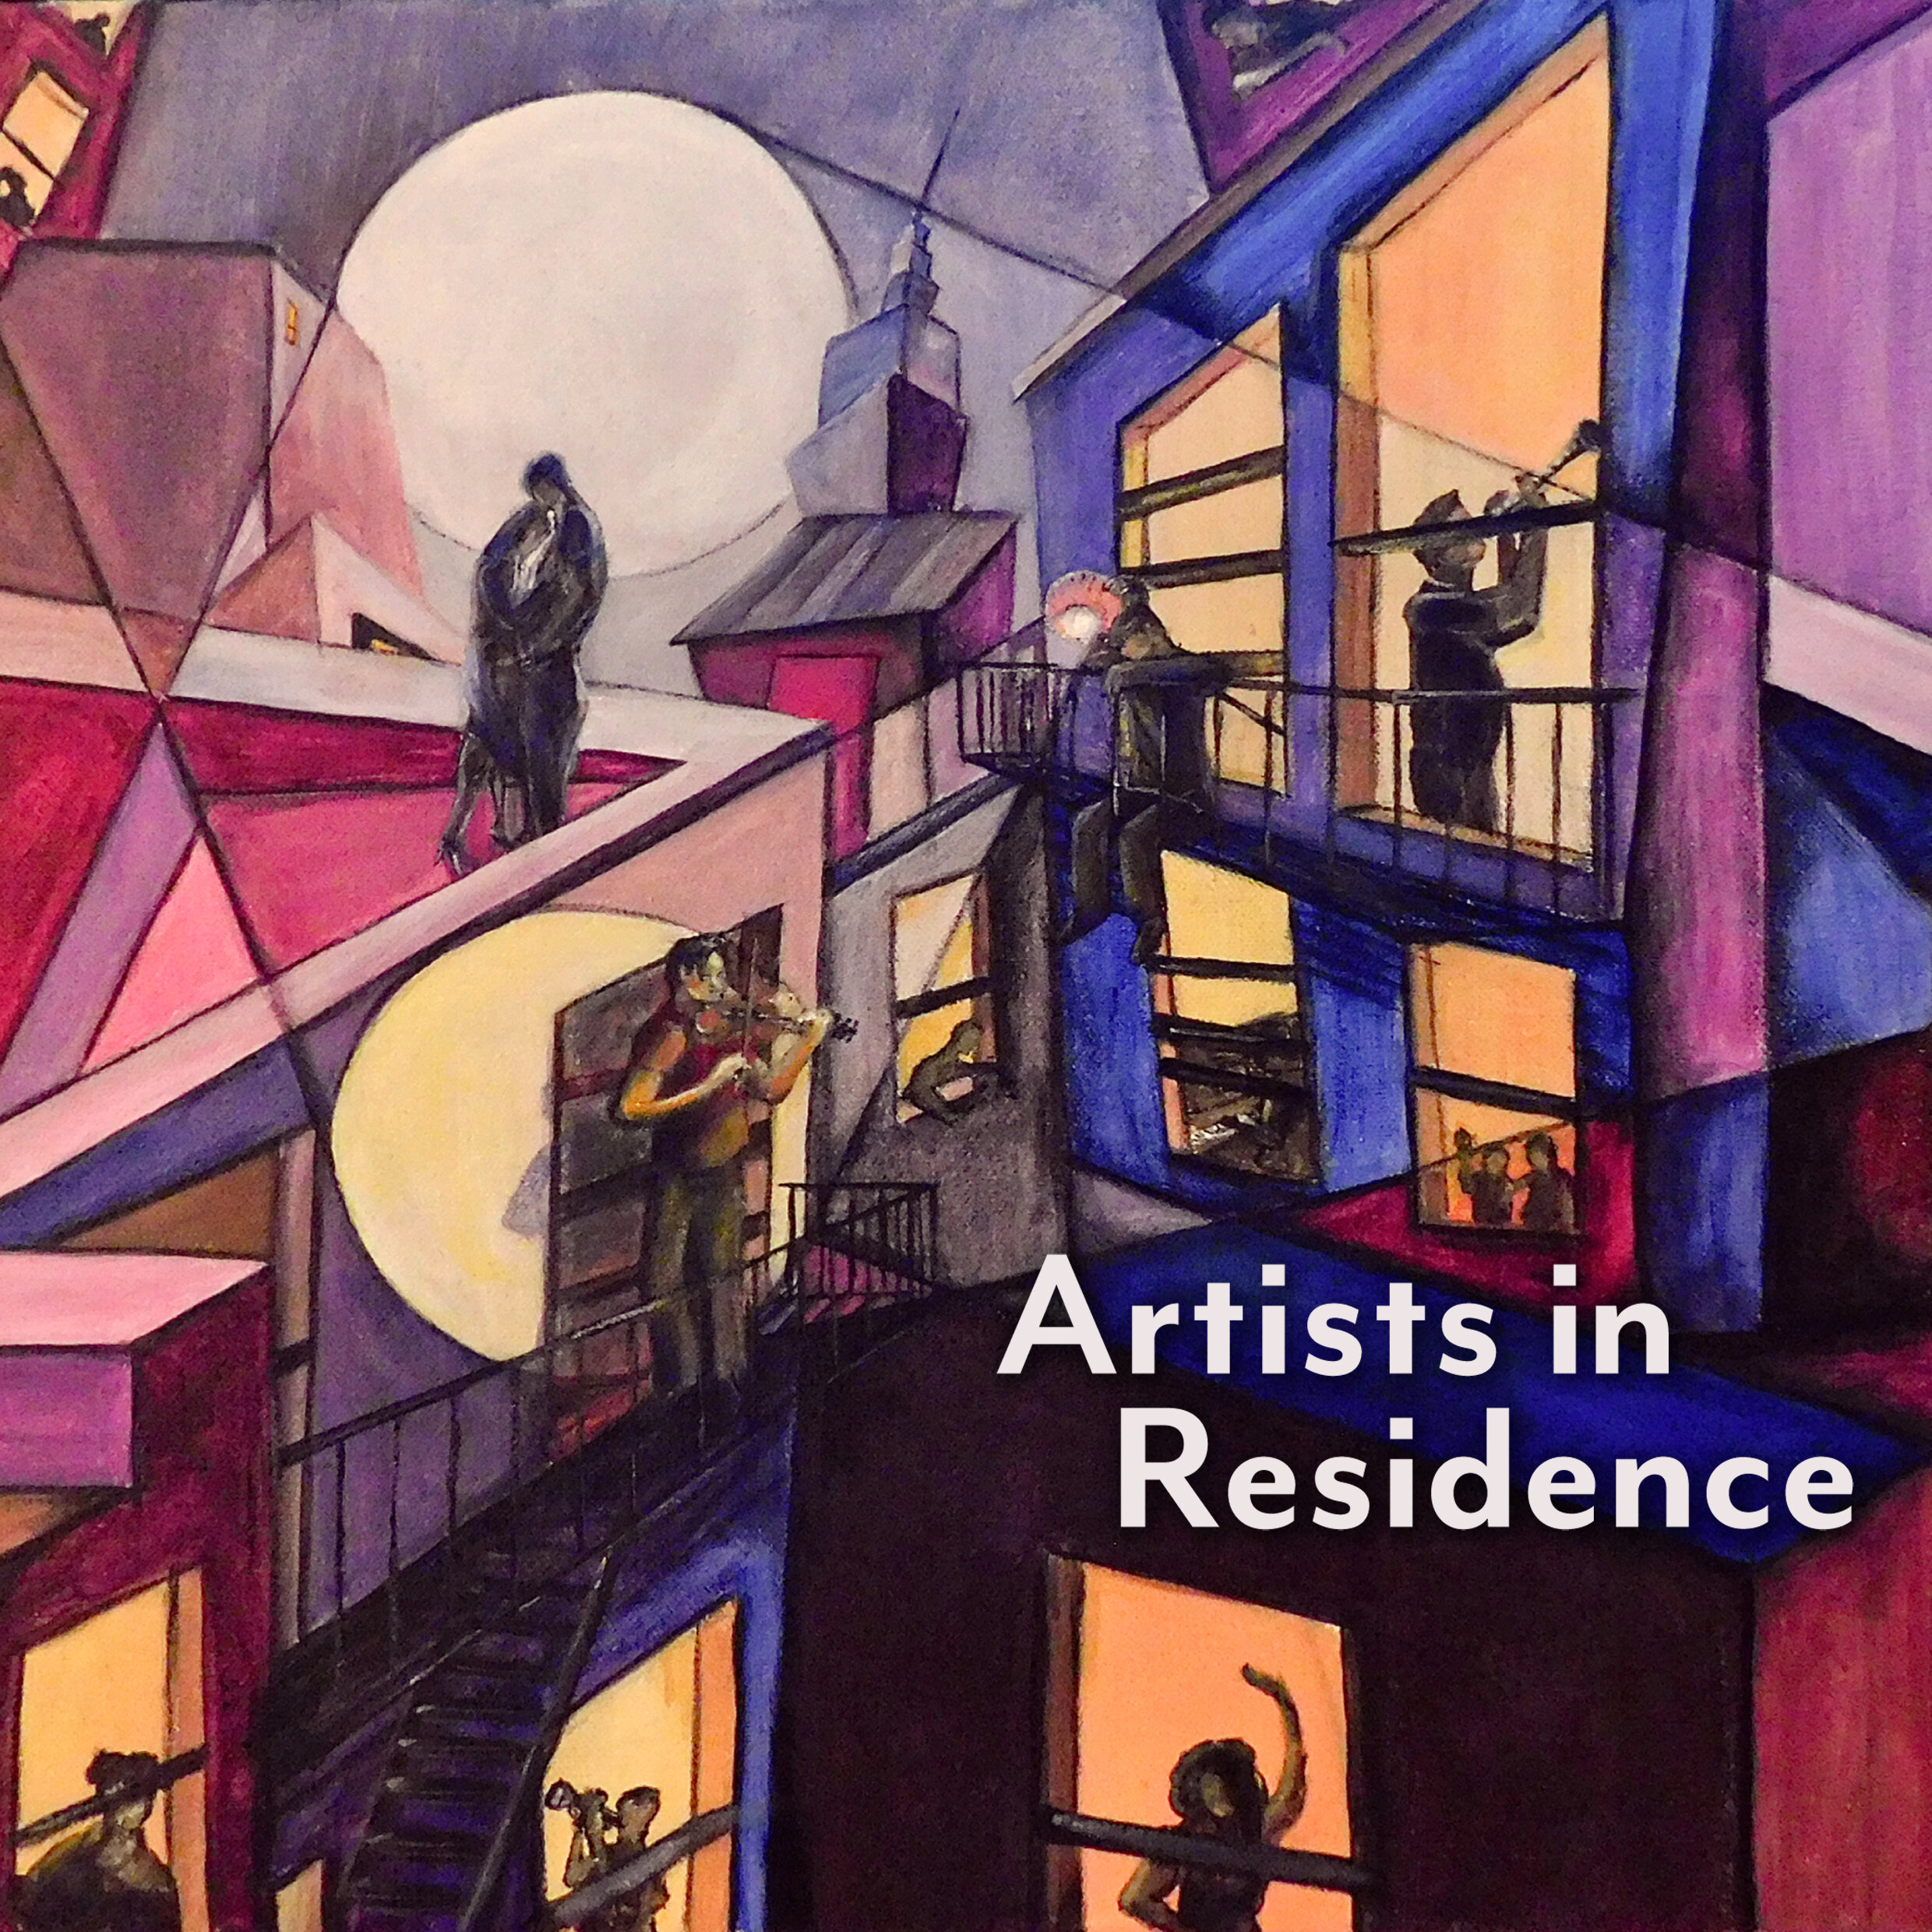 Artists in Residence [MP3] — Broadway Records